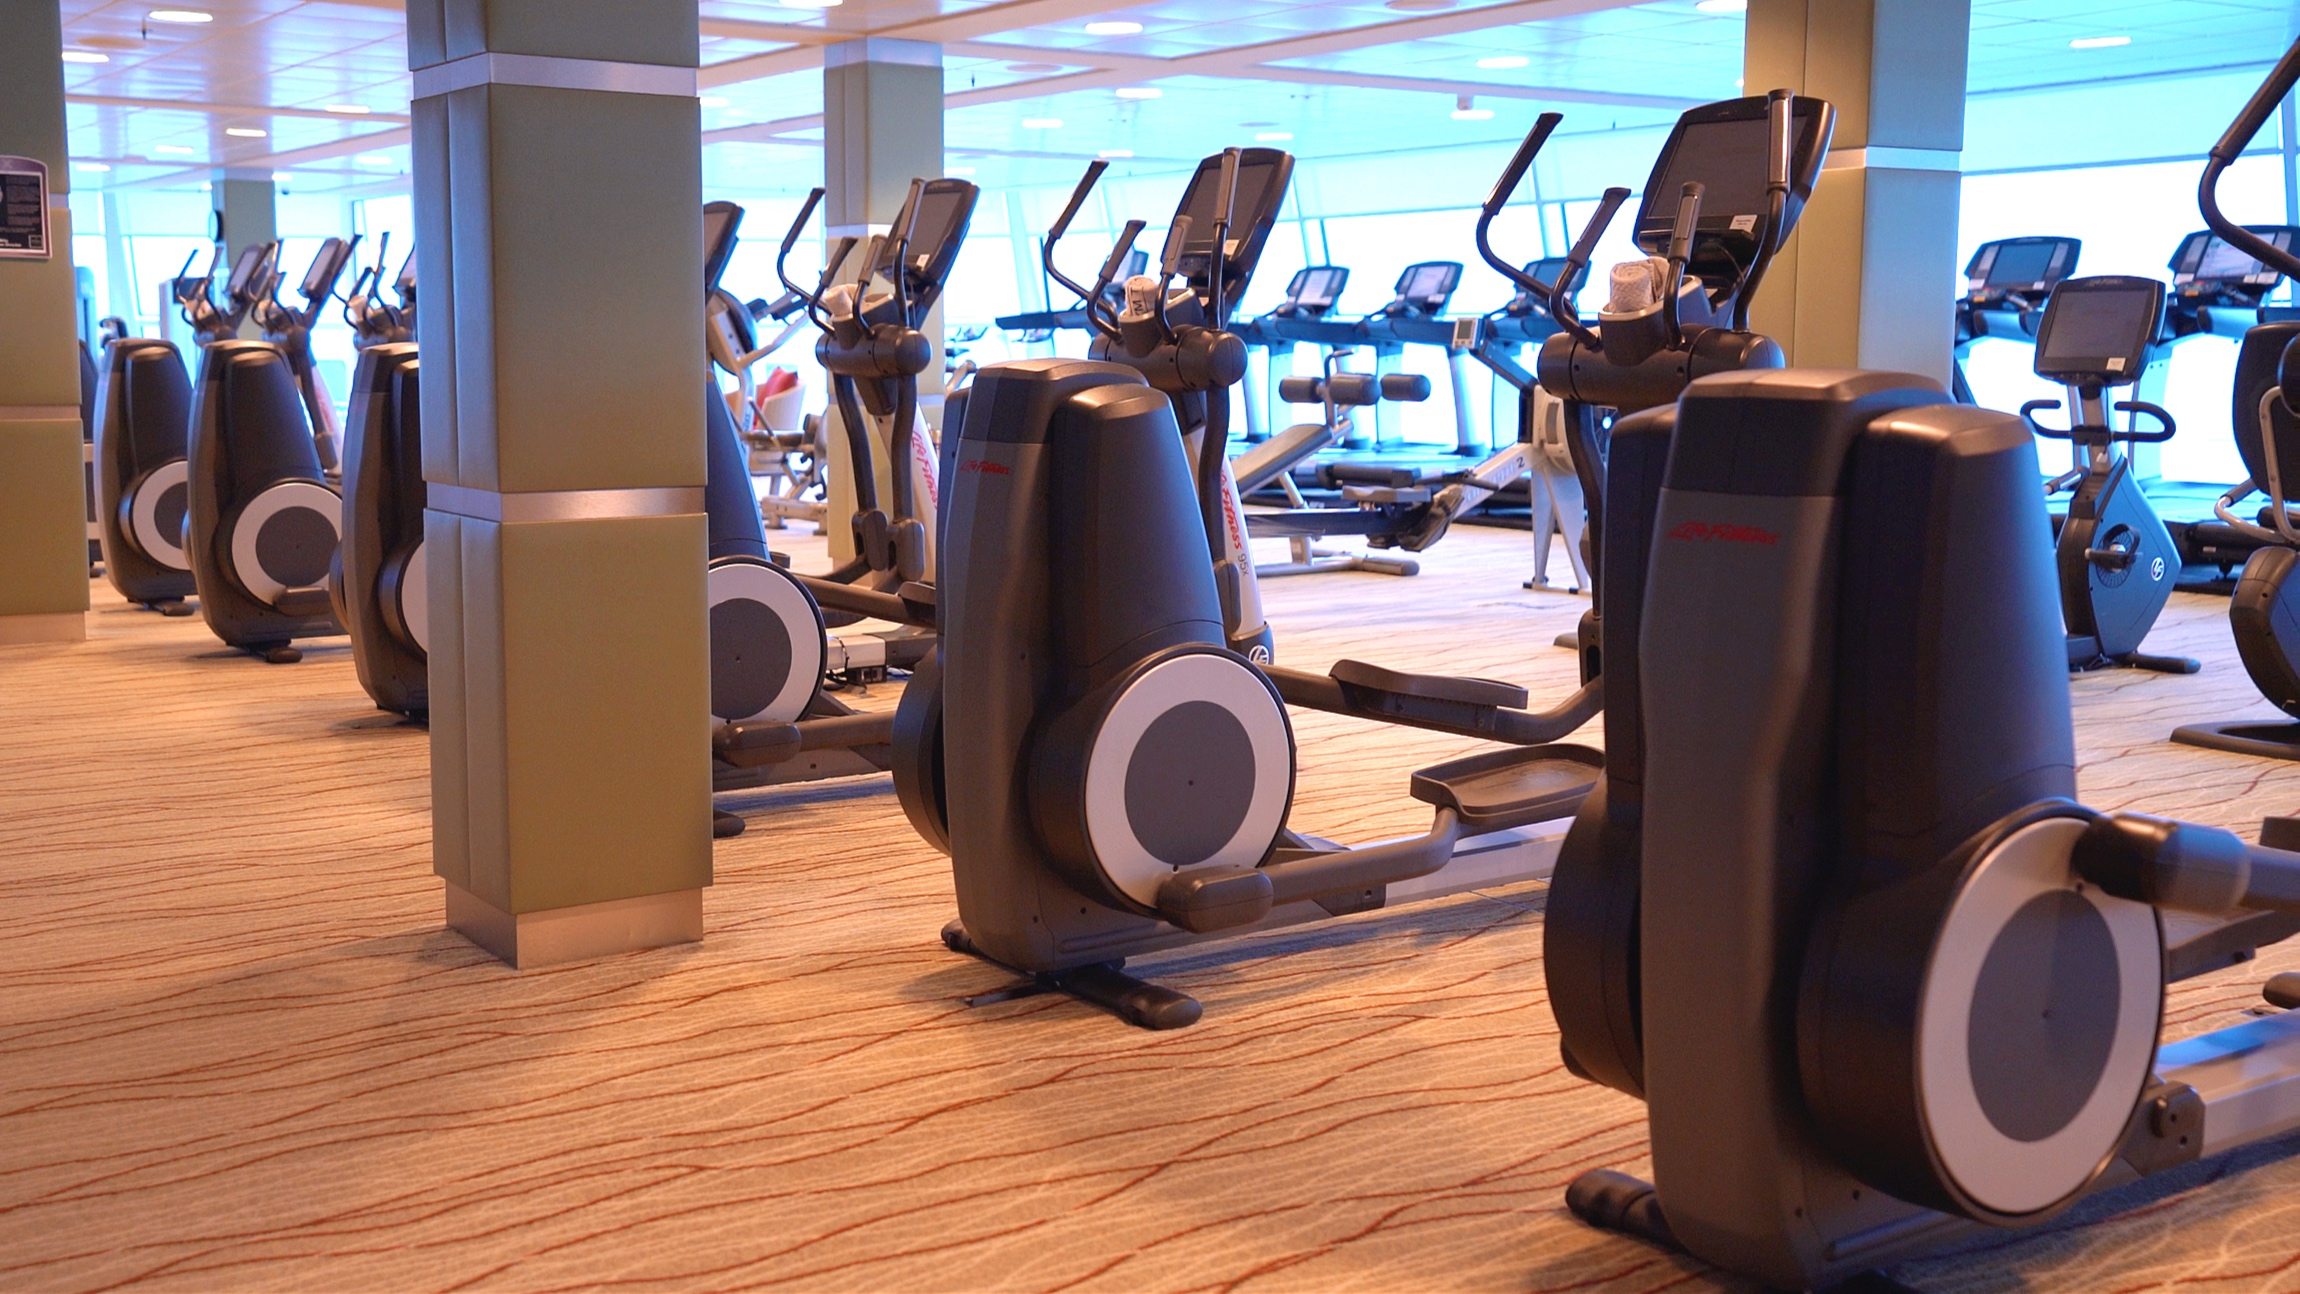 The expansive and well equipped gym